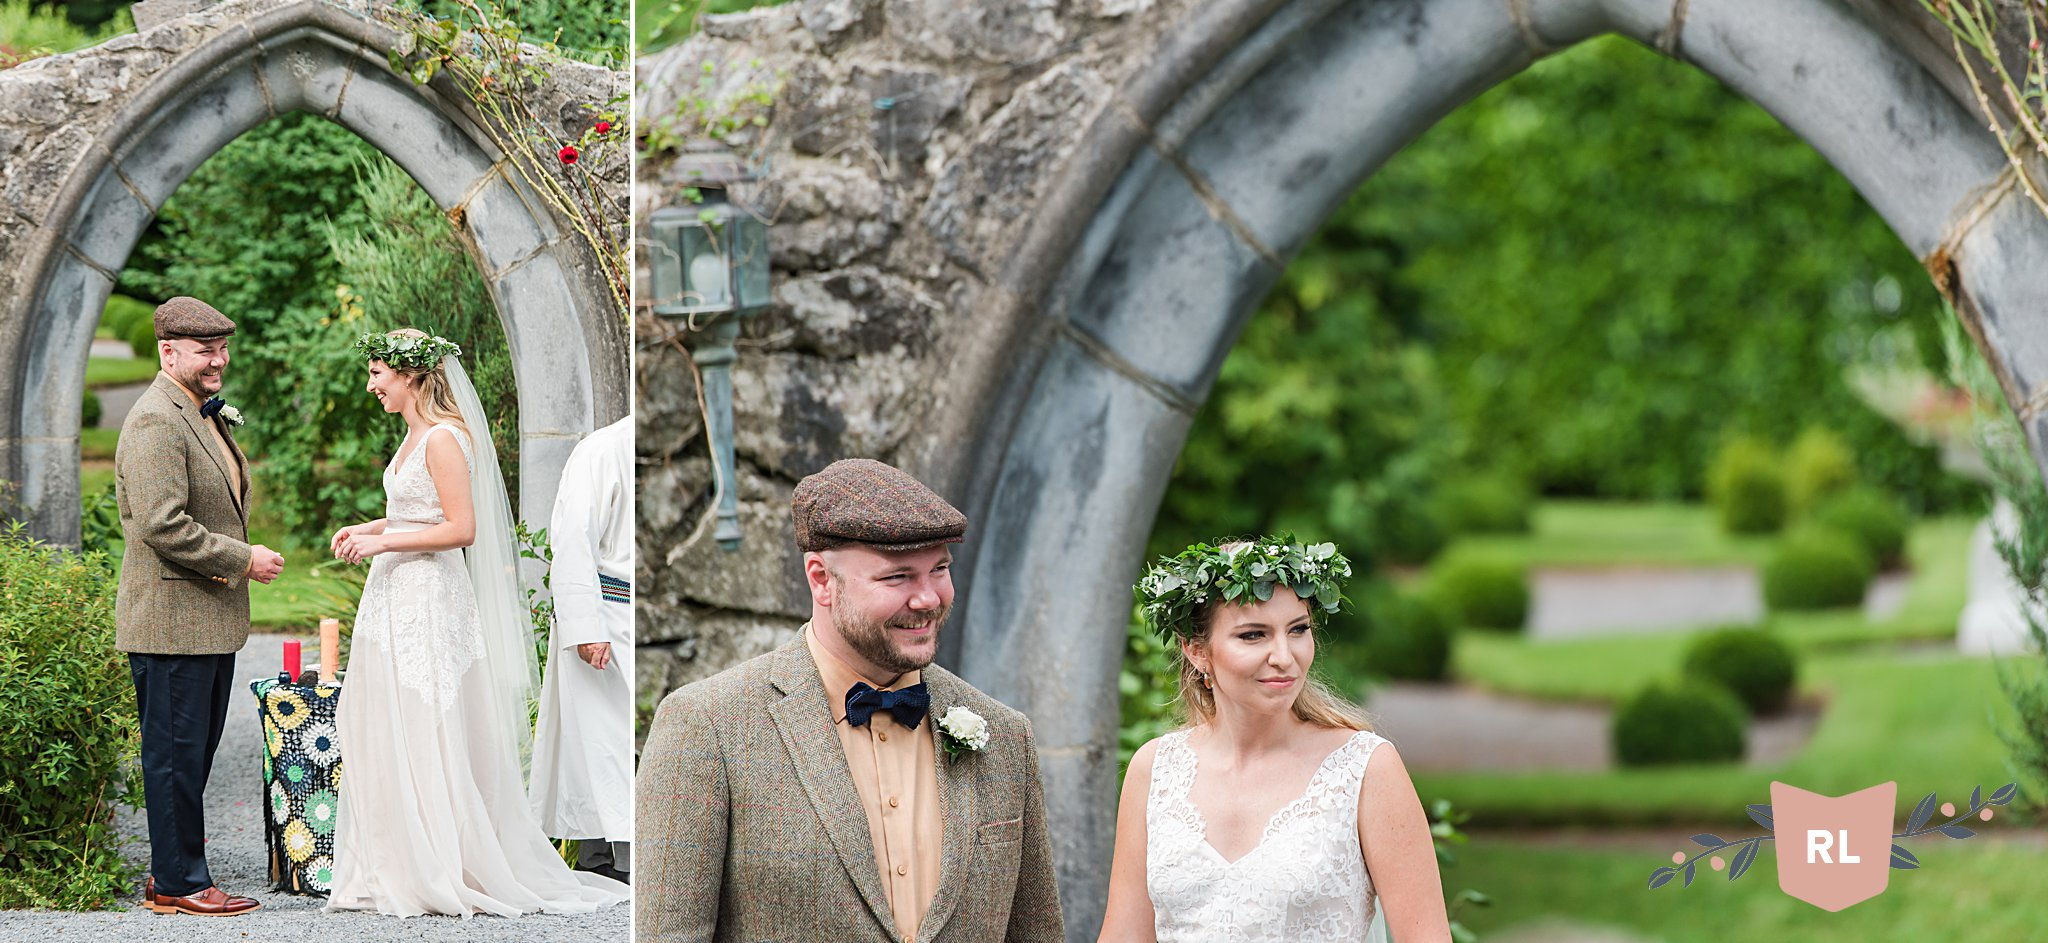 RossCastleWedding_Ireland_1022.jpg